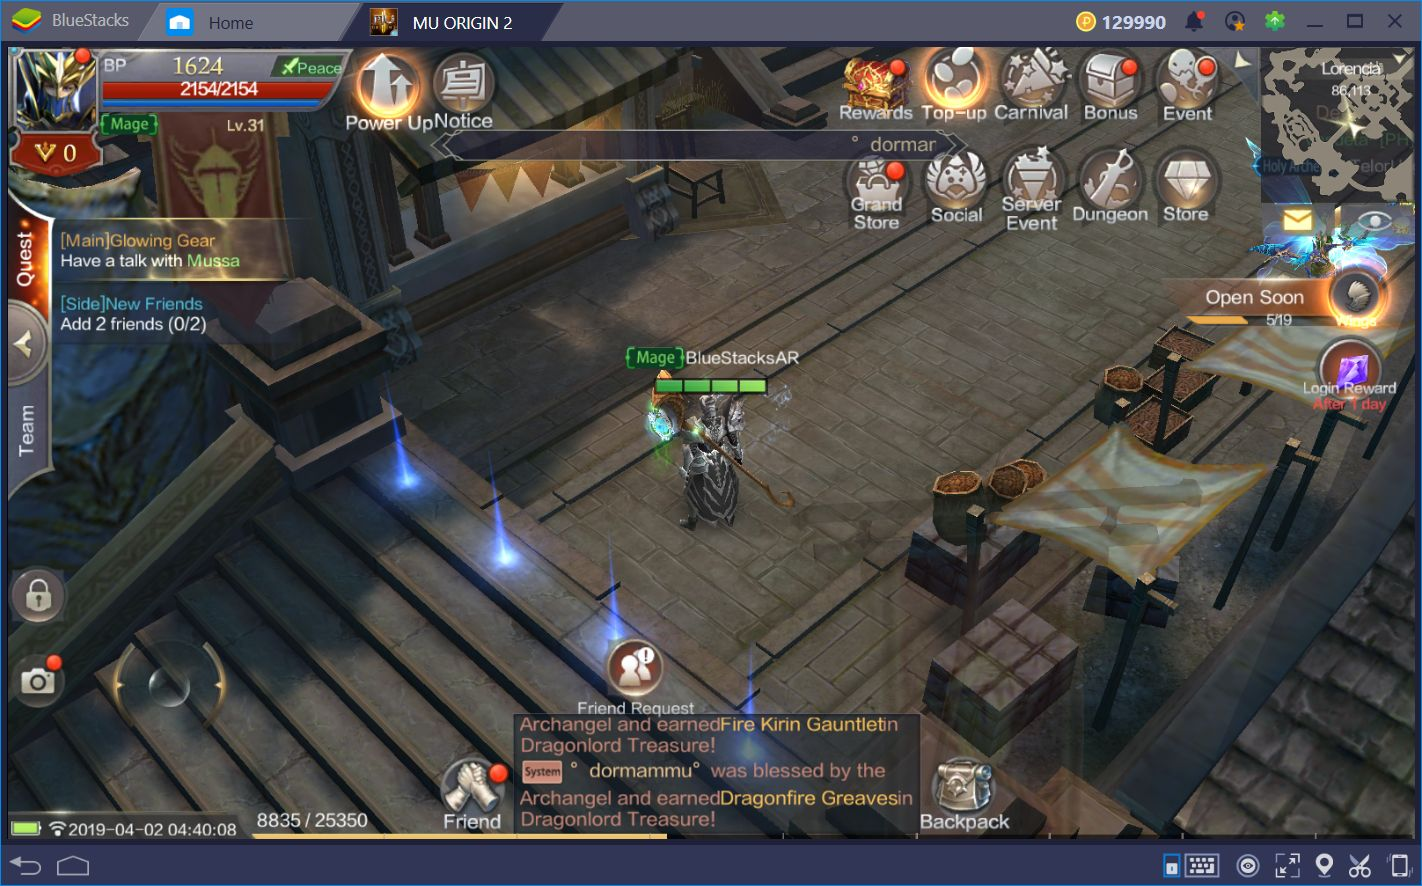 MU Origin 2—The Famous MMORPG Gets a New Look!